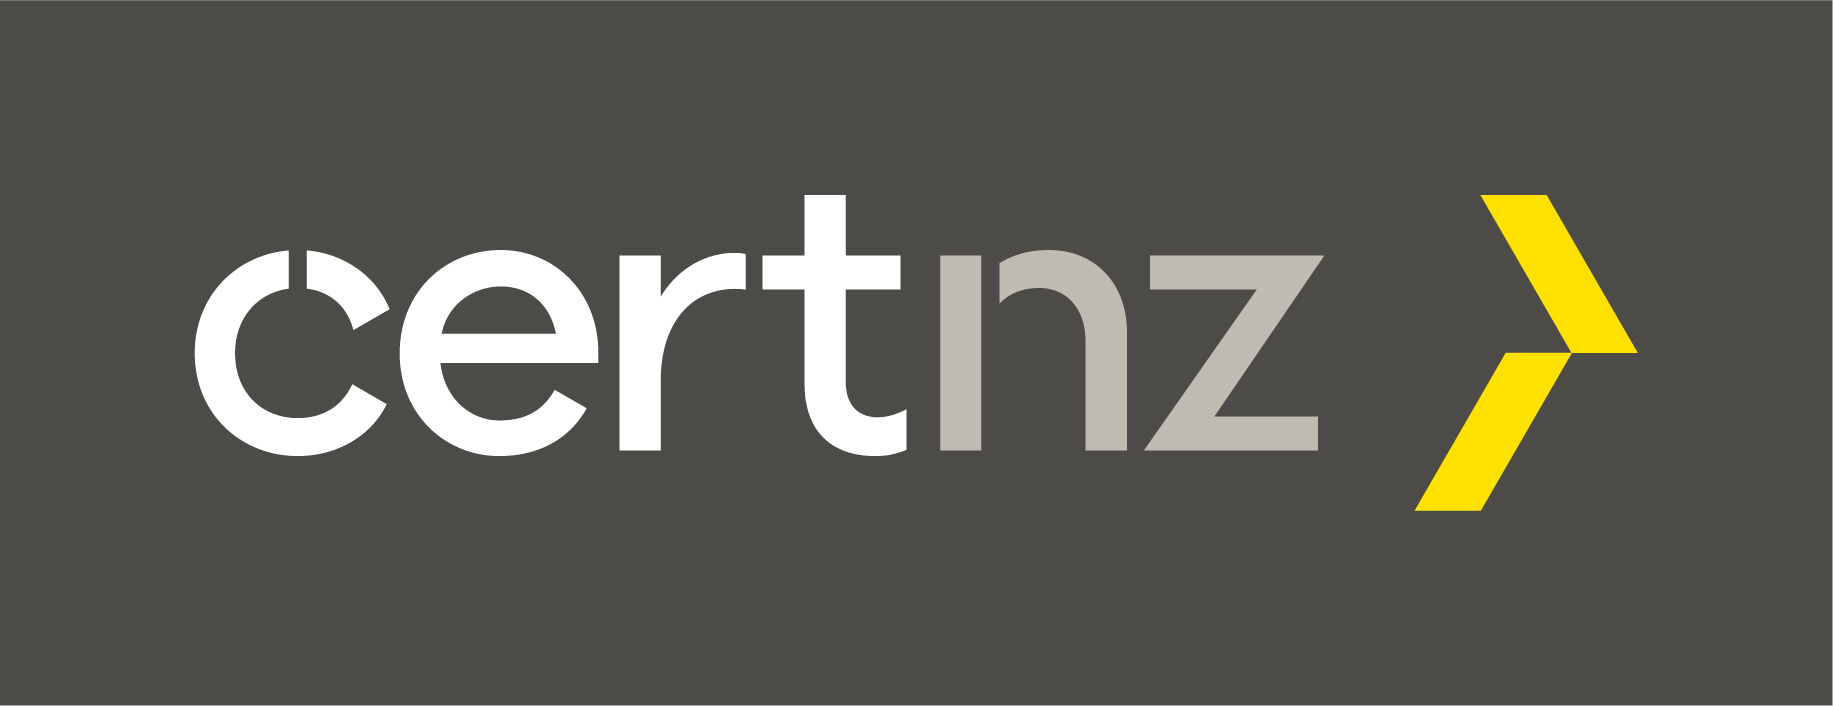 'Urgent 11' Vulnerabilities in VxWorks Operating Systems   CERT NZ is aware of critical vulnerabilities in VxWorks operating systems.  CERTNZ, August 2019